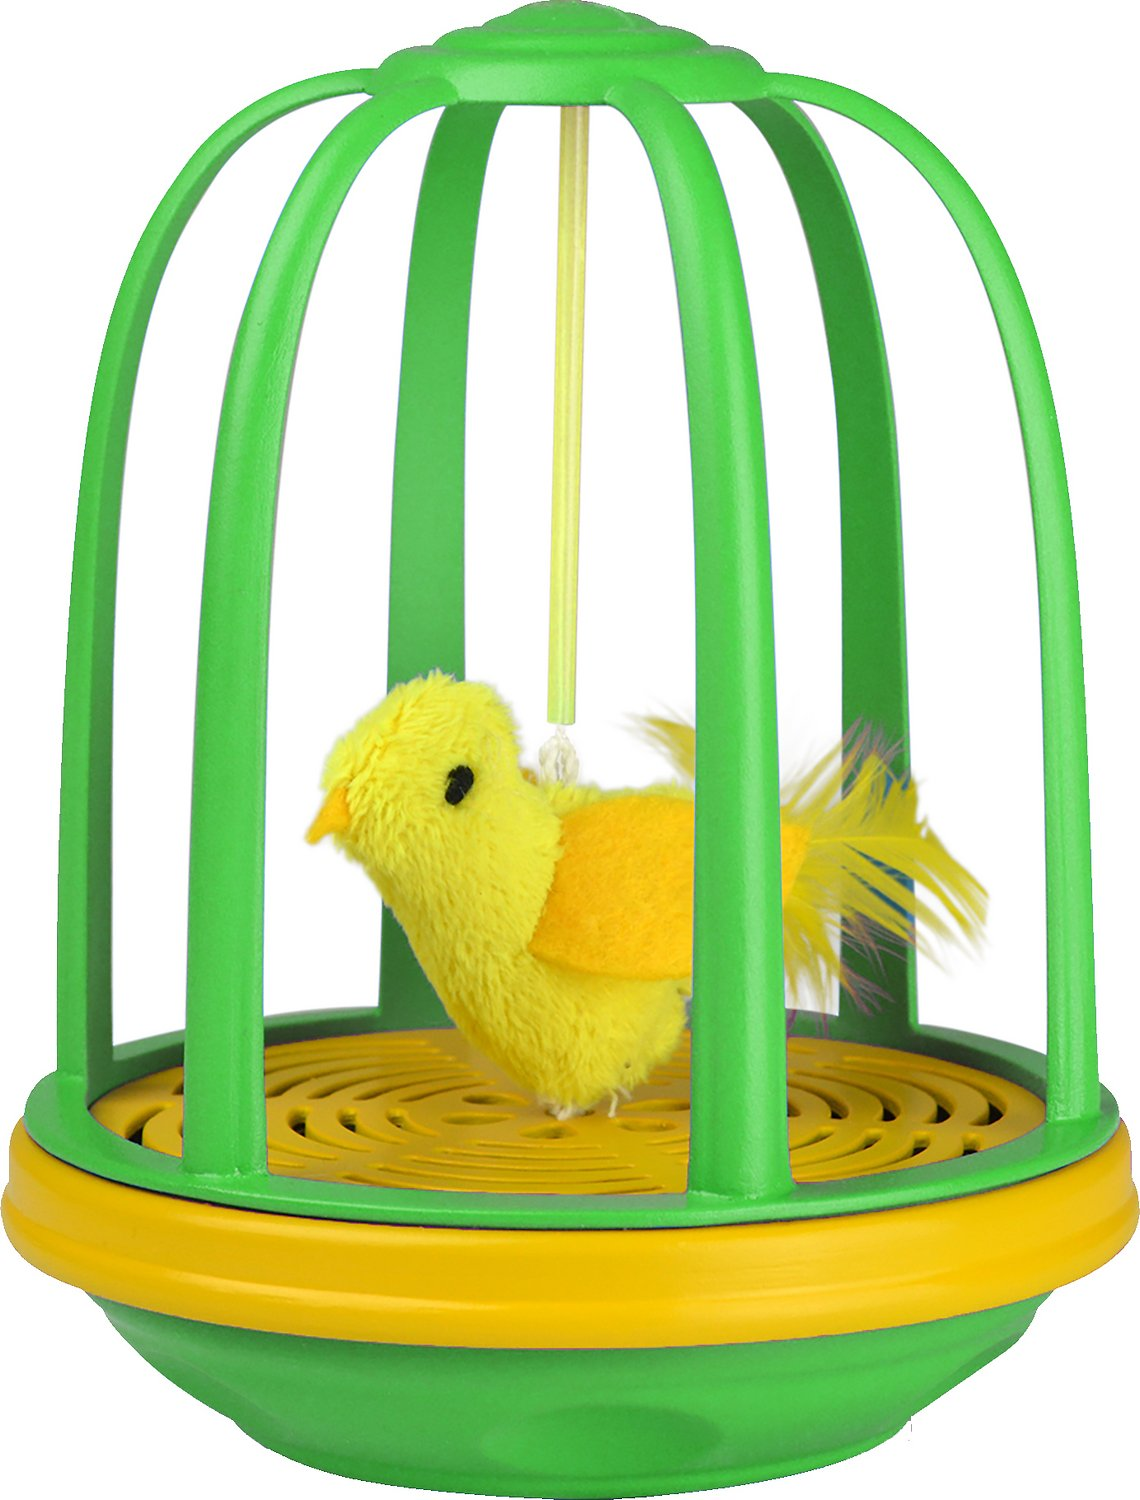 Cat Toy Fish Game : Pet zone caged canary interactive cat toy chewy